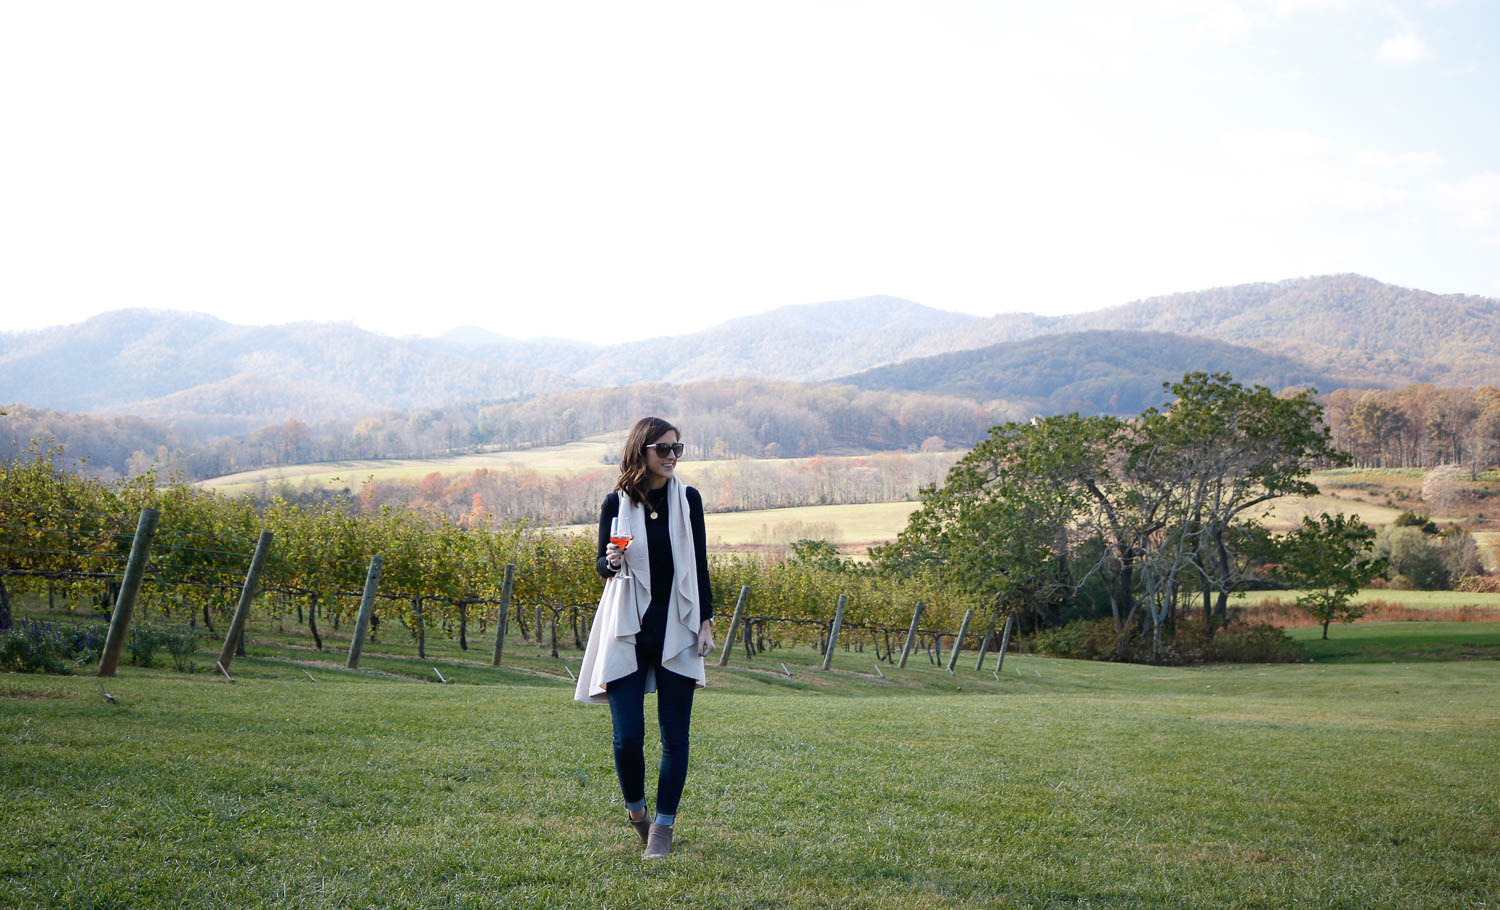 Pippin Hill Farm and Vineyard | Charlottesville, Virginia Weekend Guide | Cobalt Chronicles